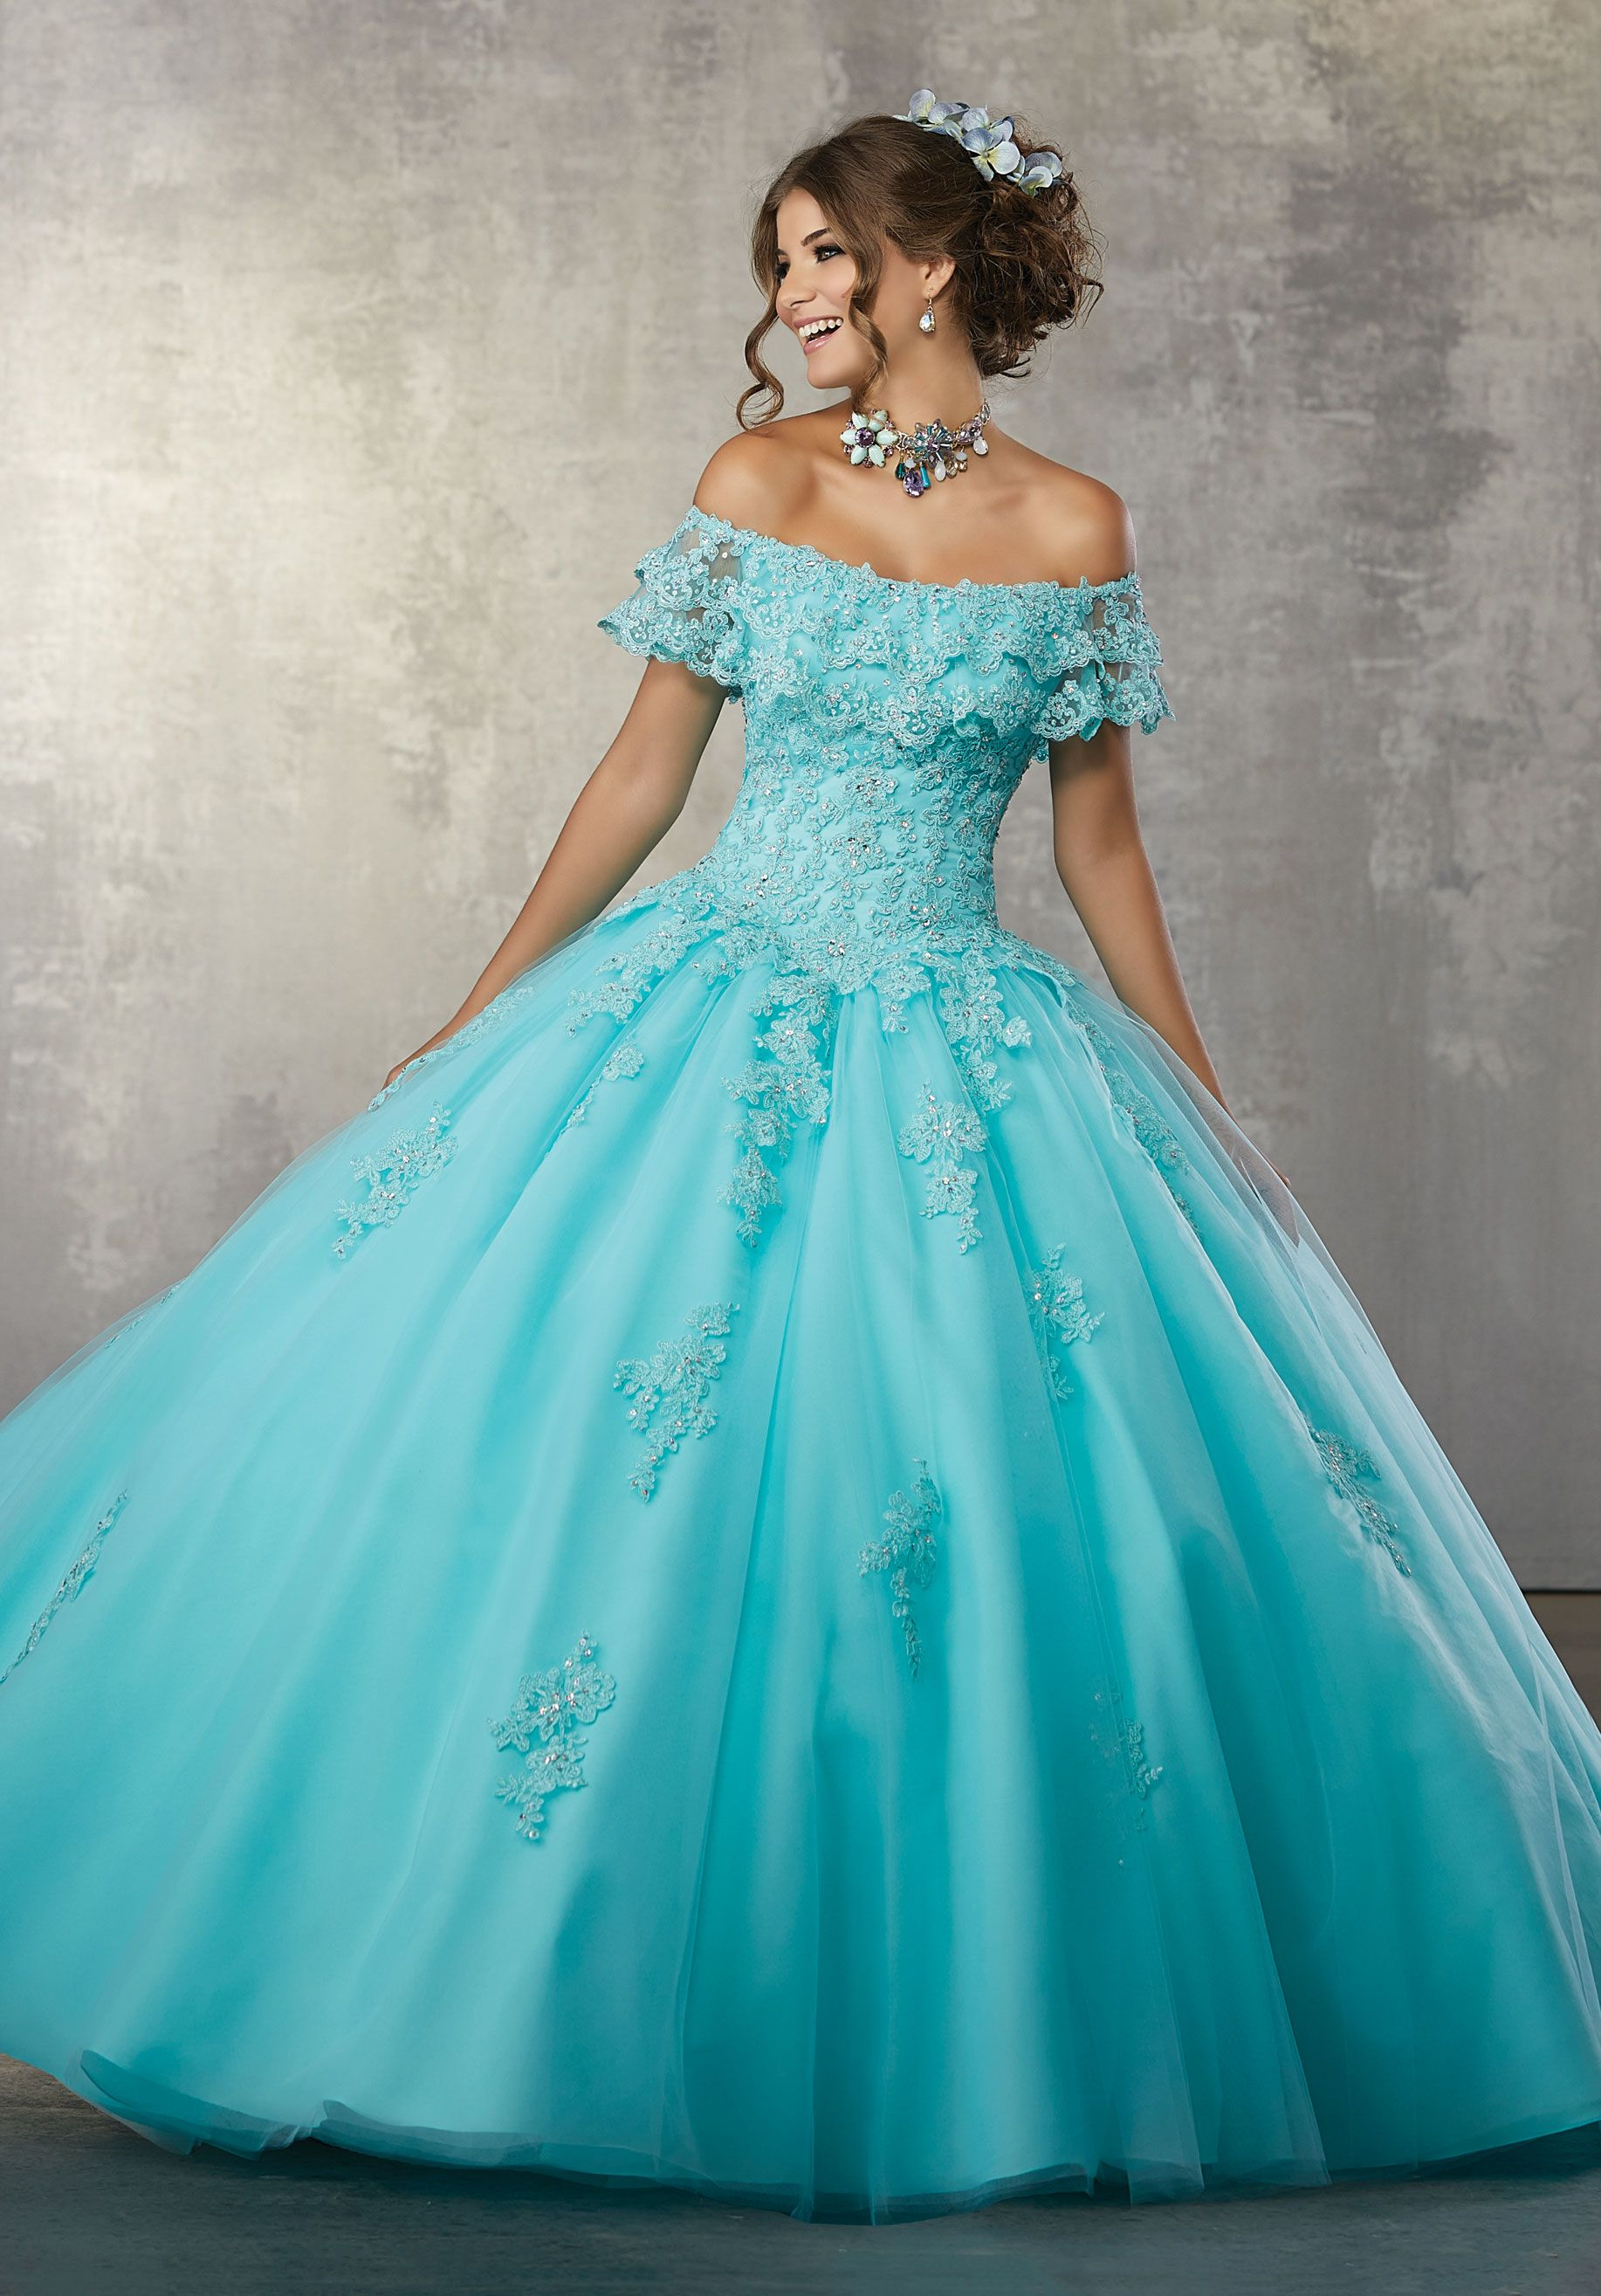 9e4fbe186bd Glamorous Quinceañera Dress Featuring an Off the Shoulder Flounced Neckline  and Full Ballgown Skirt.